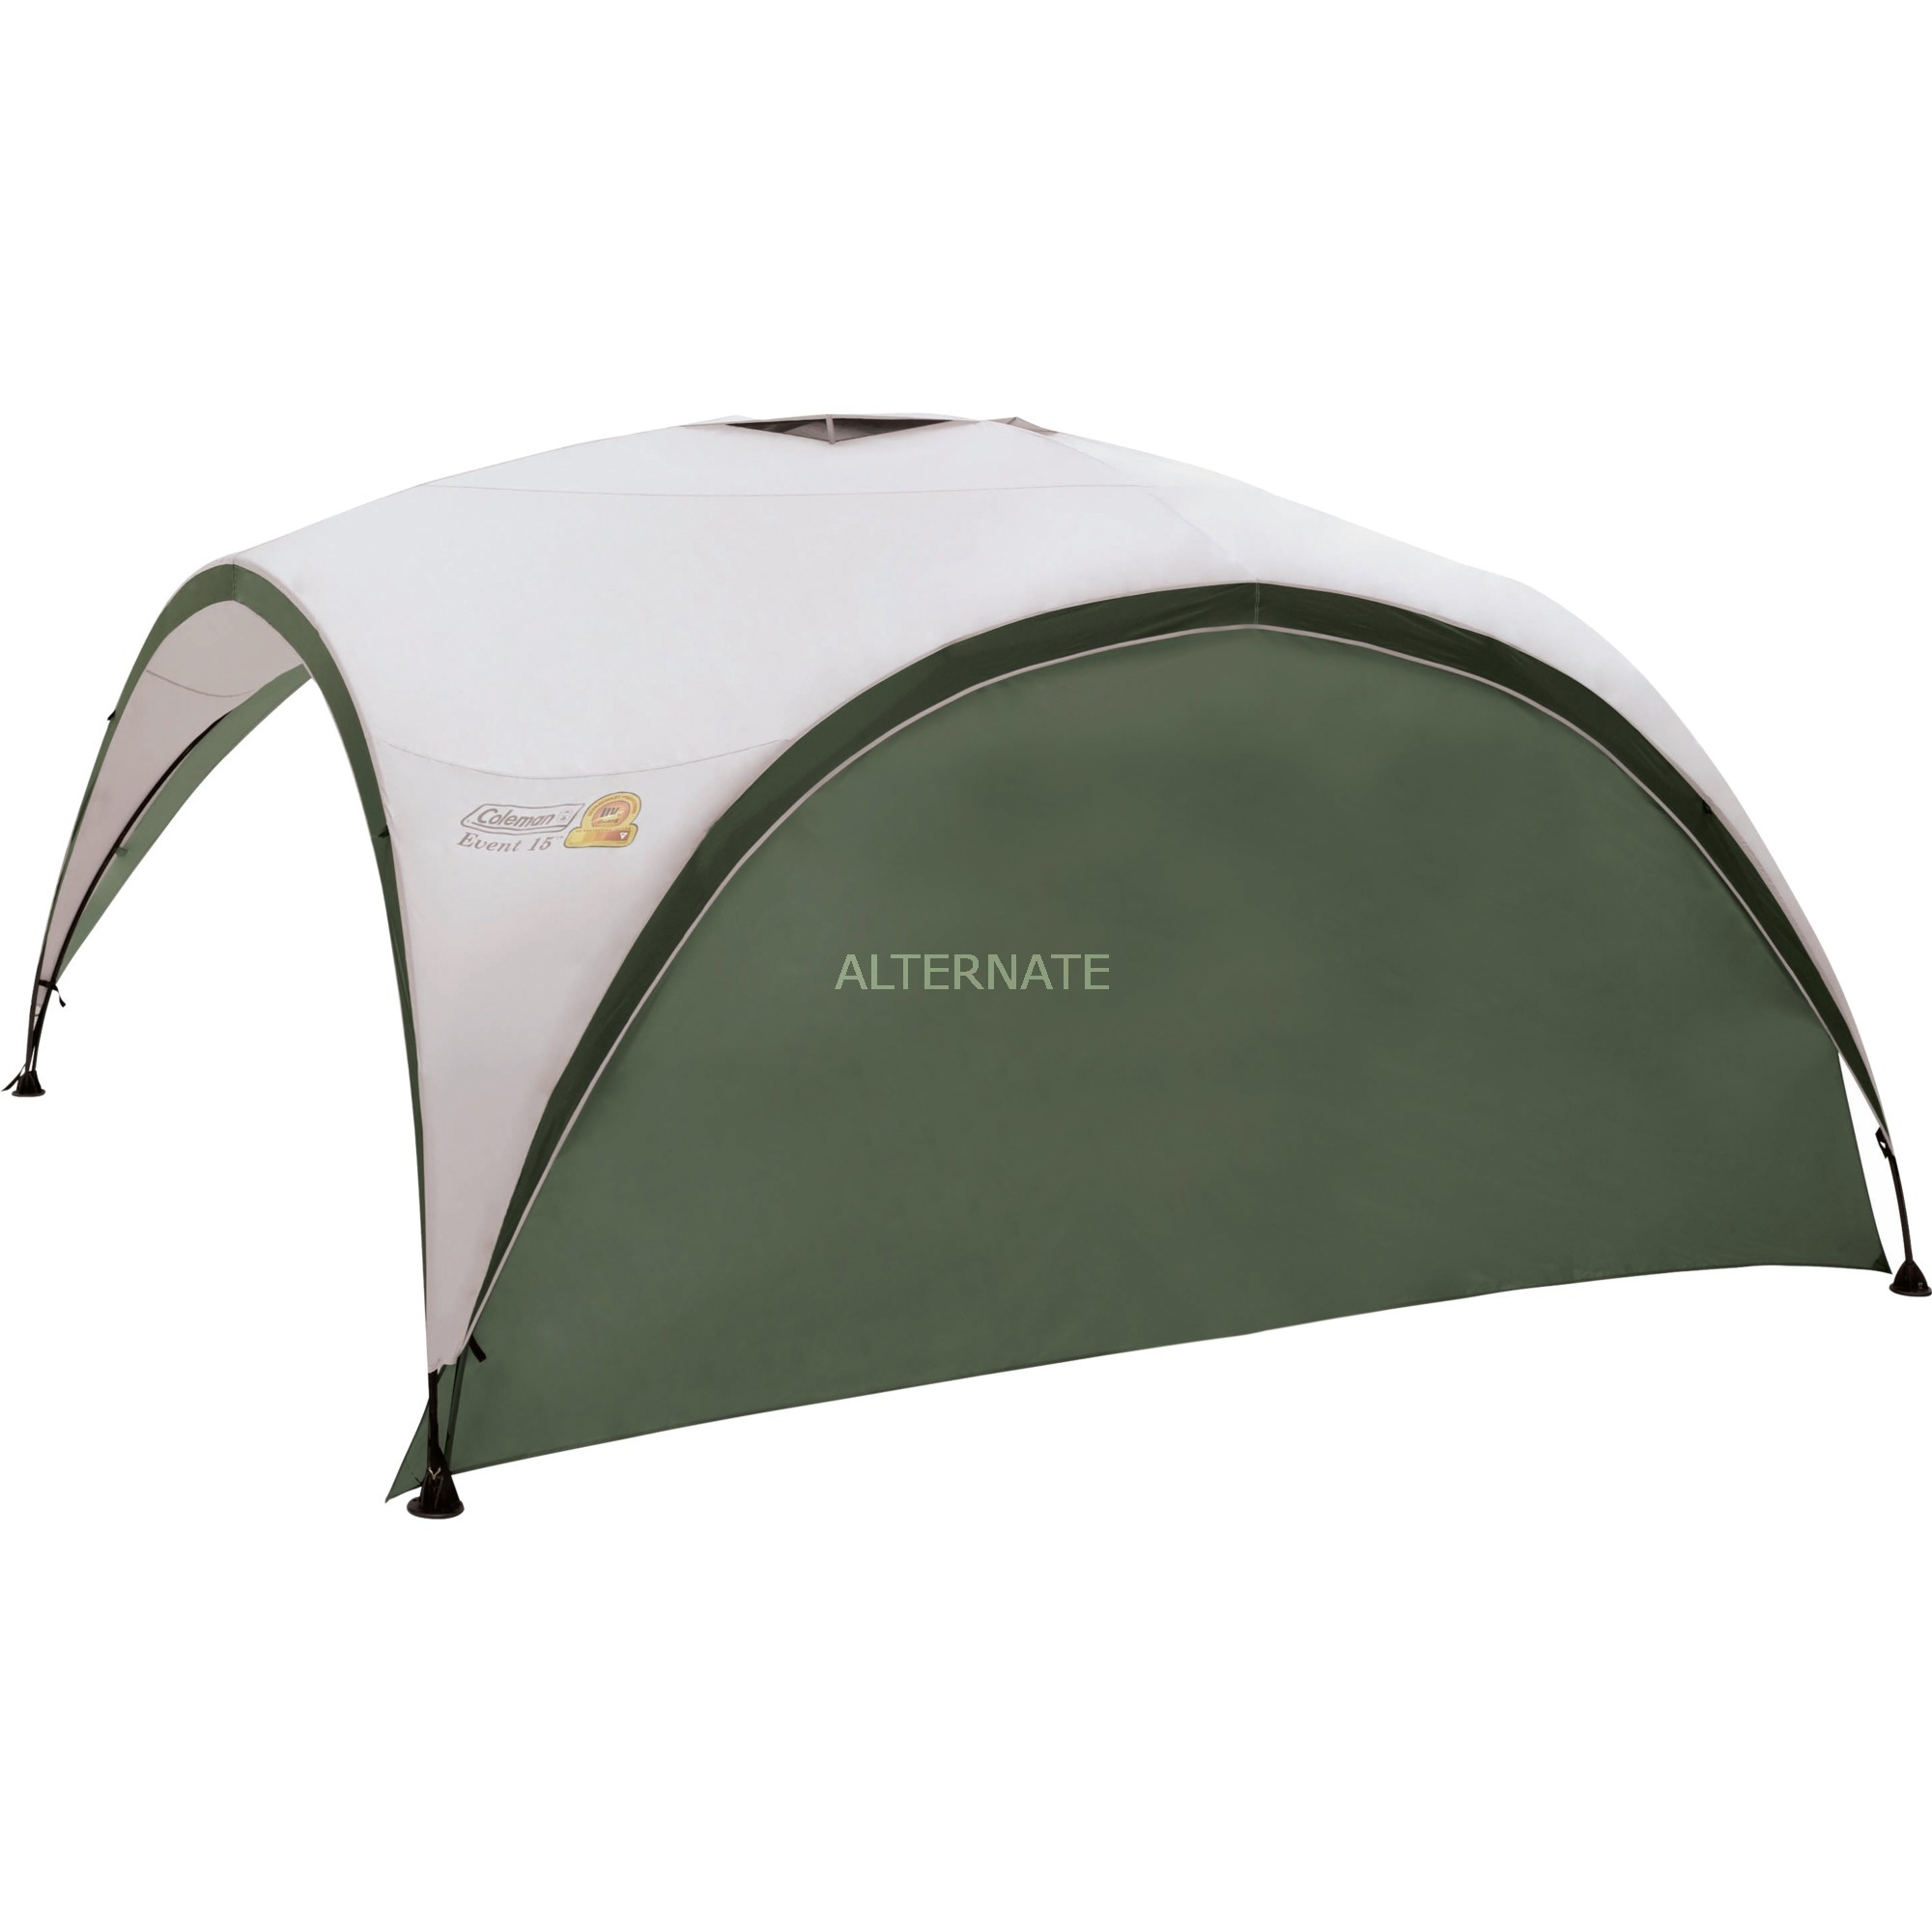 2000020990-camping-canopy-shelter-sidedel